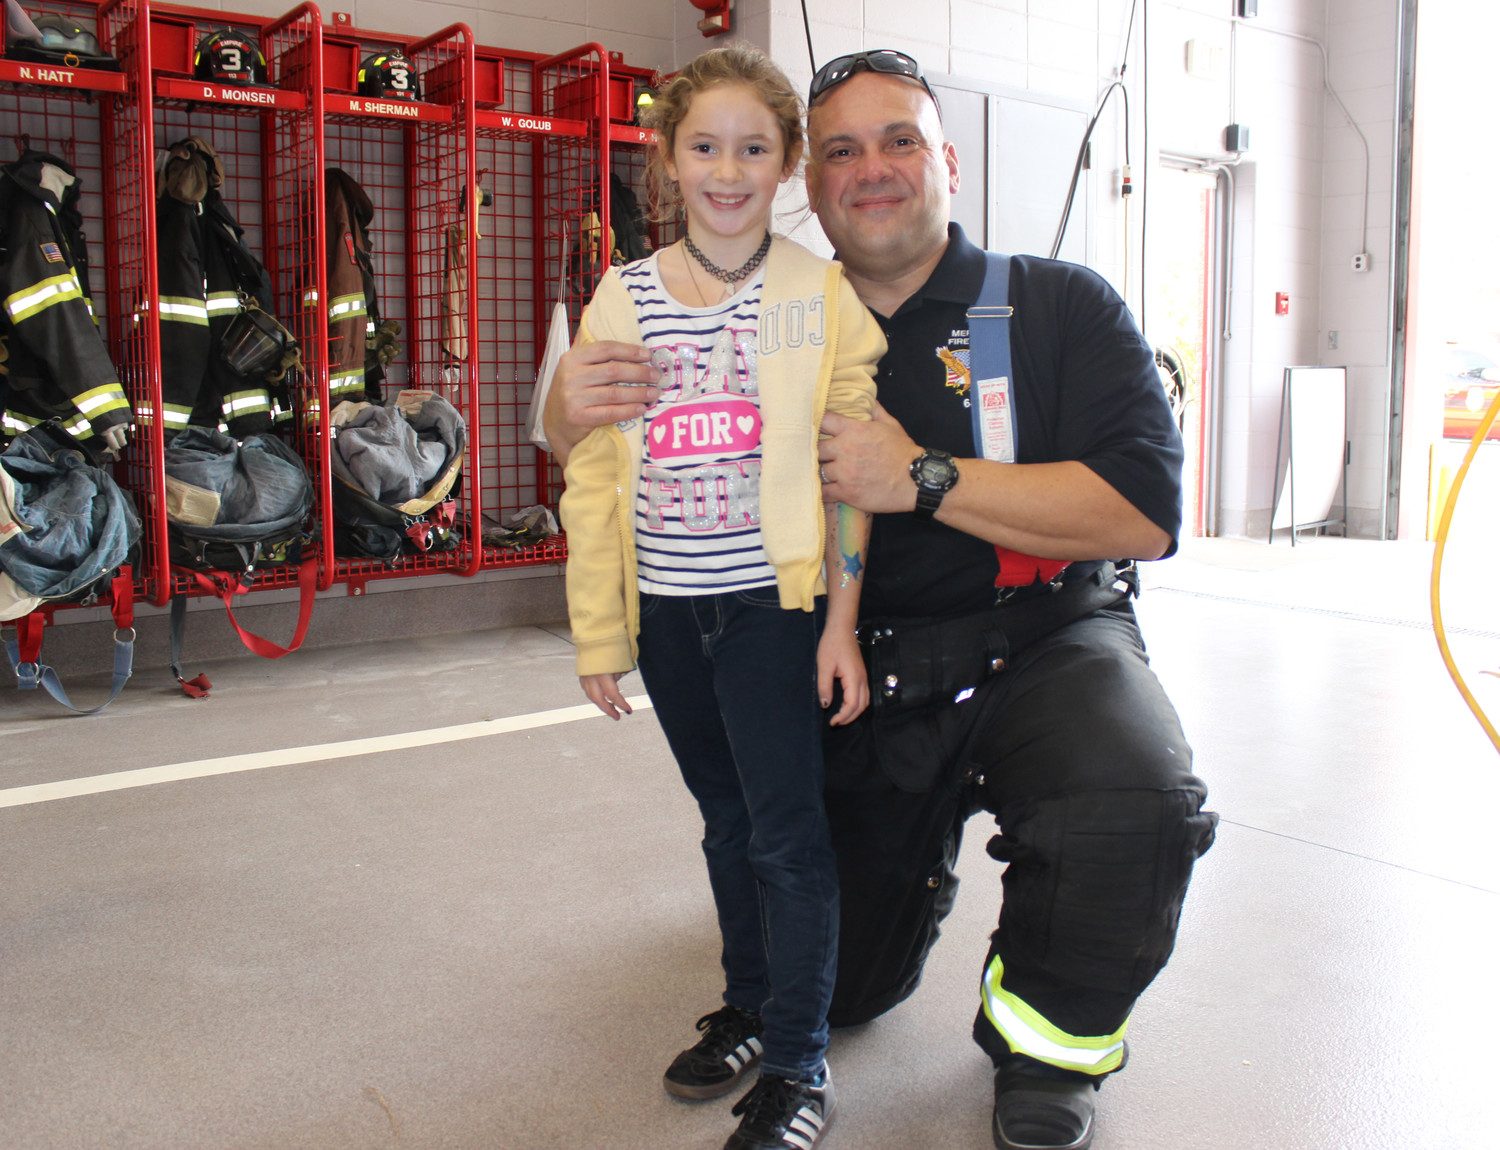 Eric Morales, 46, of Merrick, right, began volunteering for the Merrick Fire Department after its open house last year. He is pictured here with his daughter Megan.